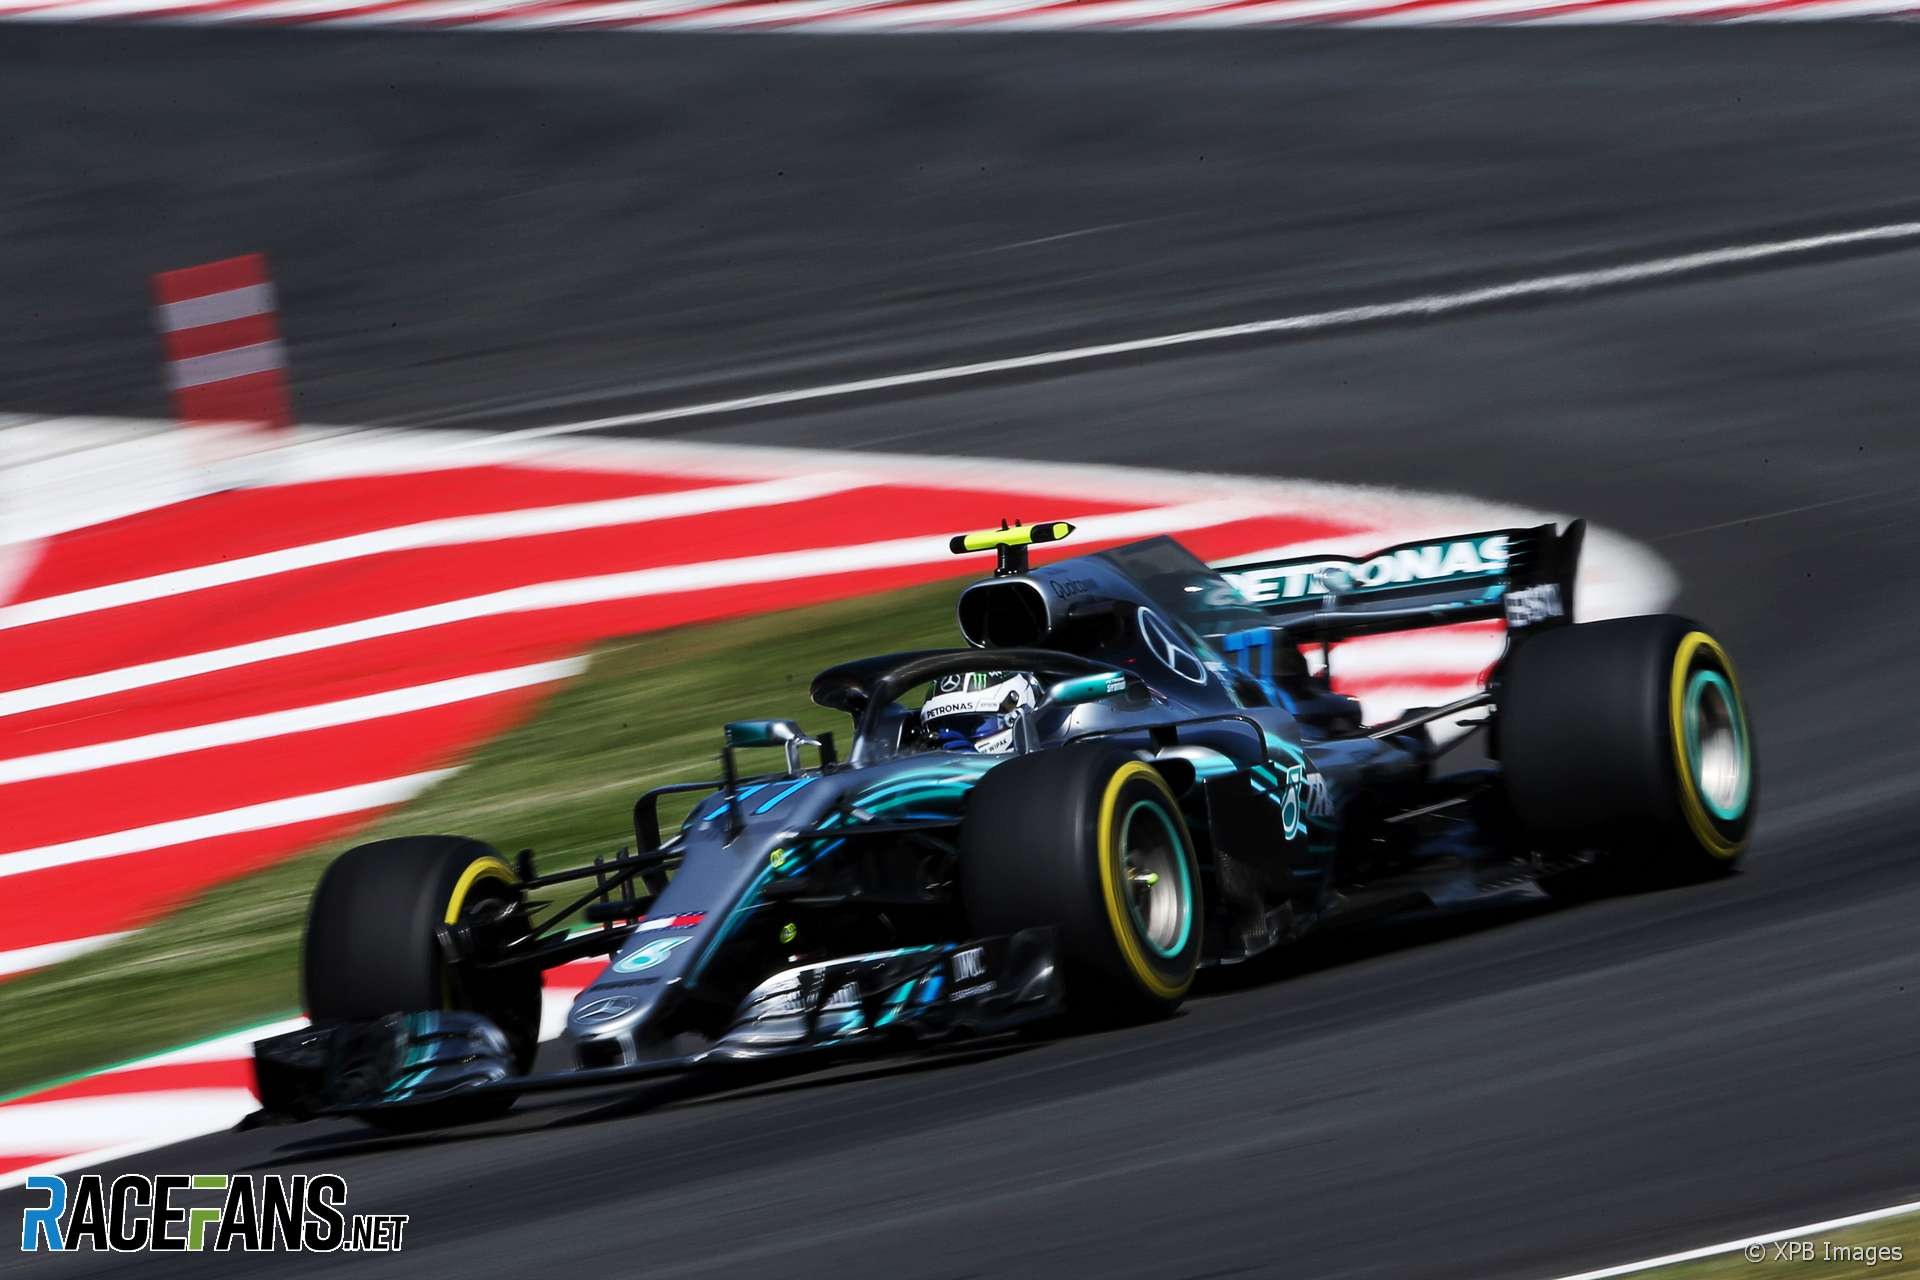 Claims Pirelli changed tyres to help Mercedes are